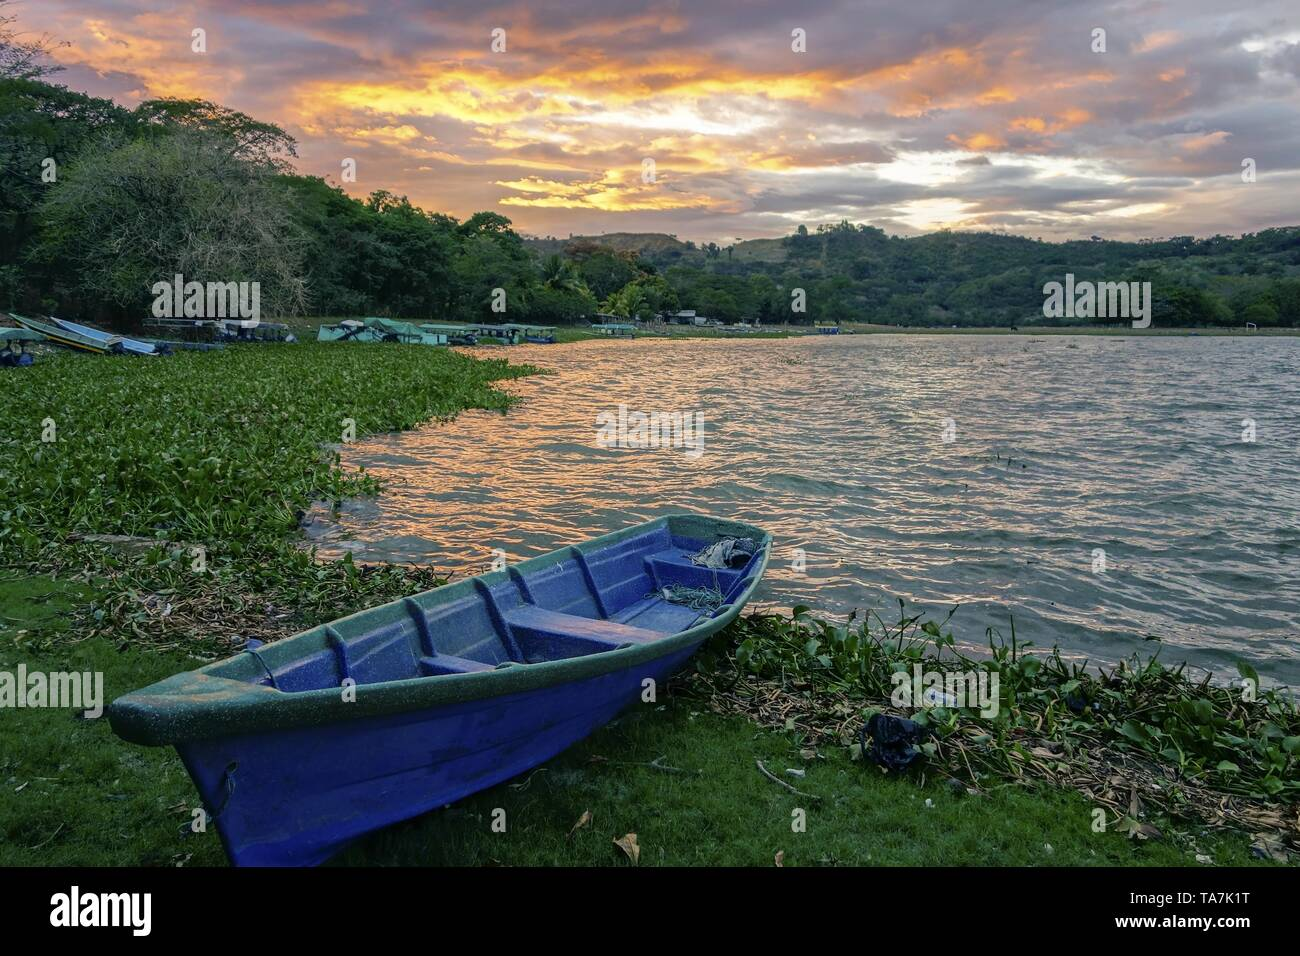 Blue Fishing Boat on Shore of Beautiful Lake Suchitlan and Dramatic Sunset Sky near Town of Suchitoto in El Salvador Stock Photo